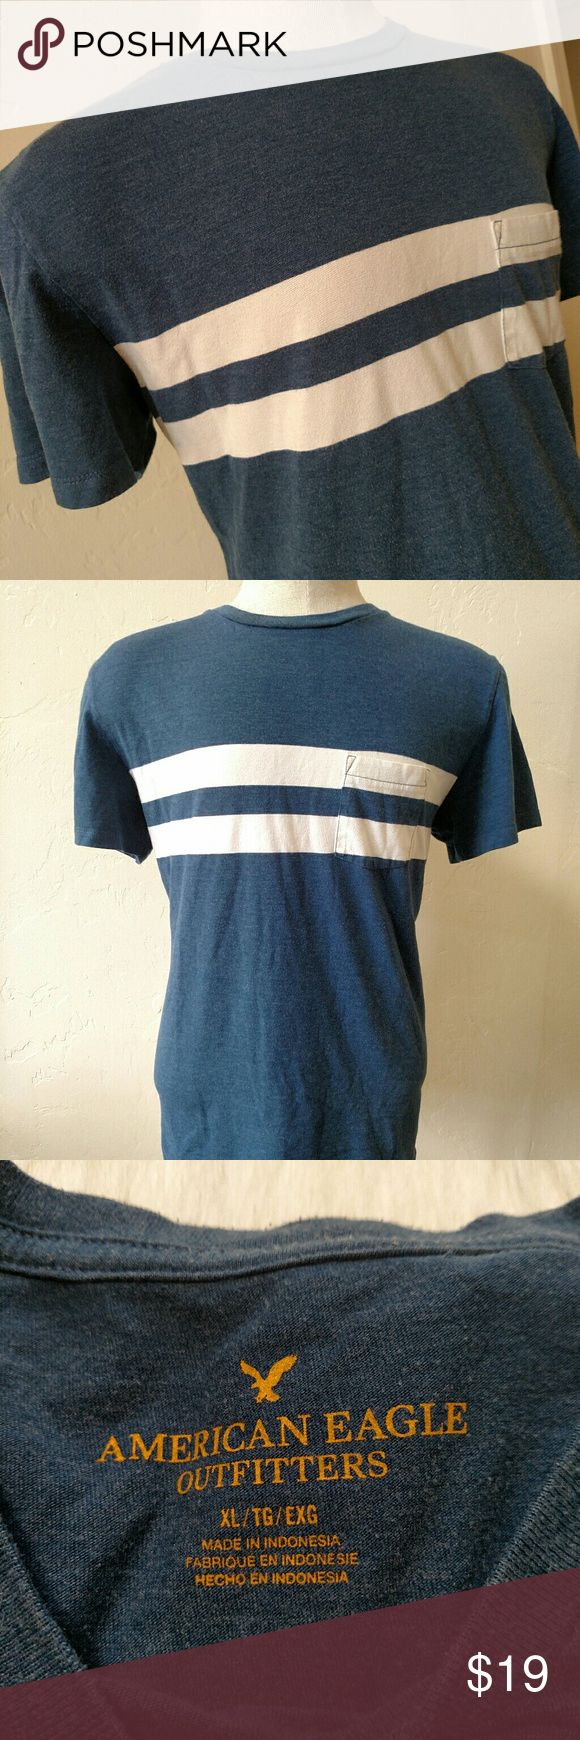 American Eagle t shirt XL Used but good condition pocket t shirt.  Navy with white stripe.  Pops enough for style, subtle enough to not be loud. American Eagle Outfitters Shirts Tees - Short Sleeve